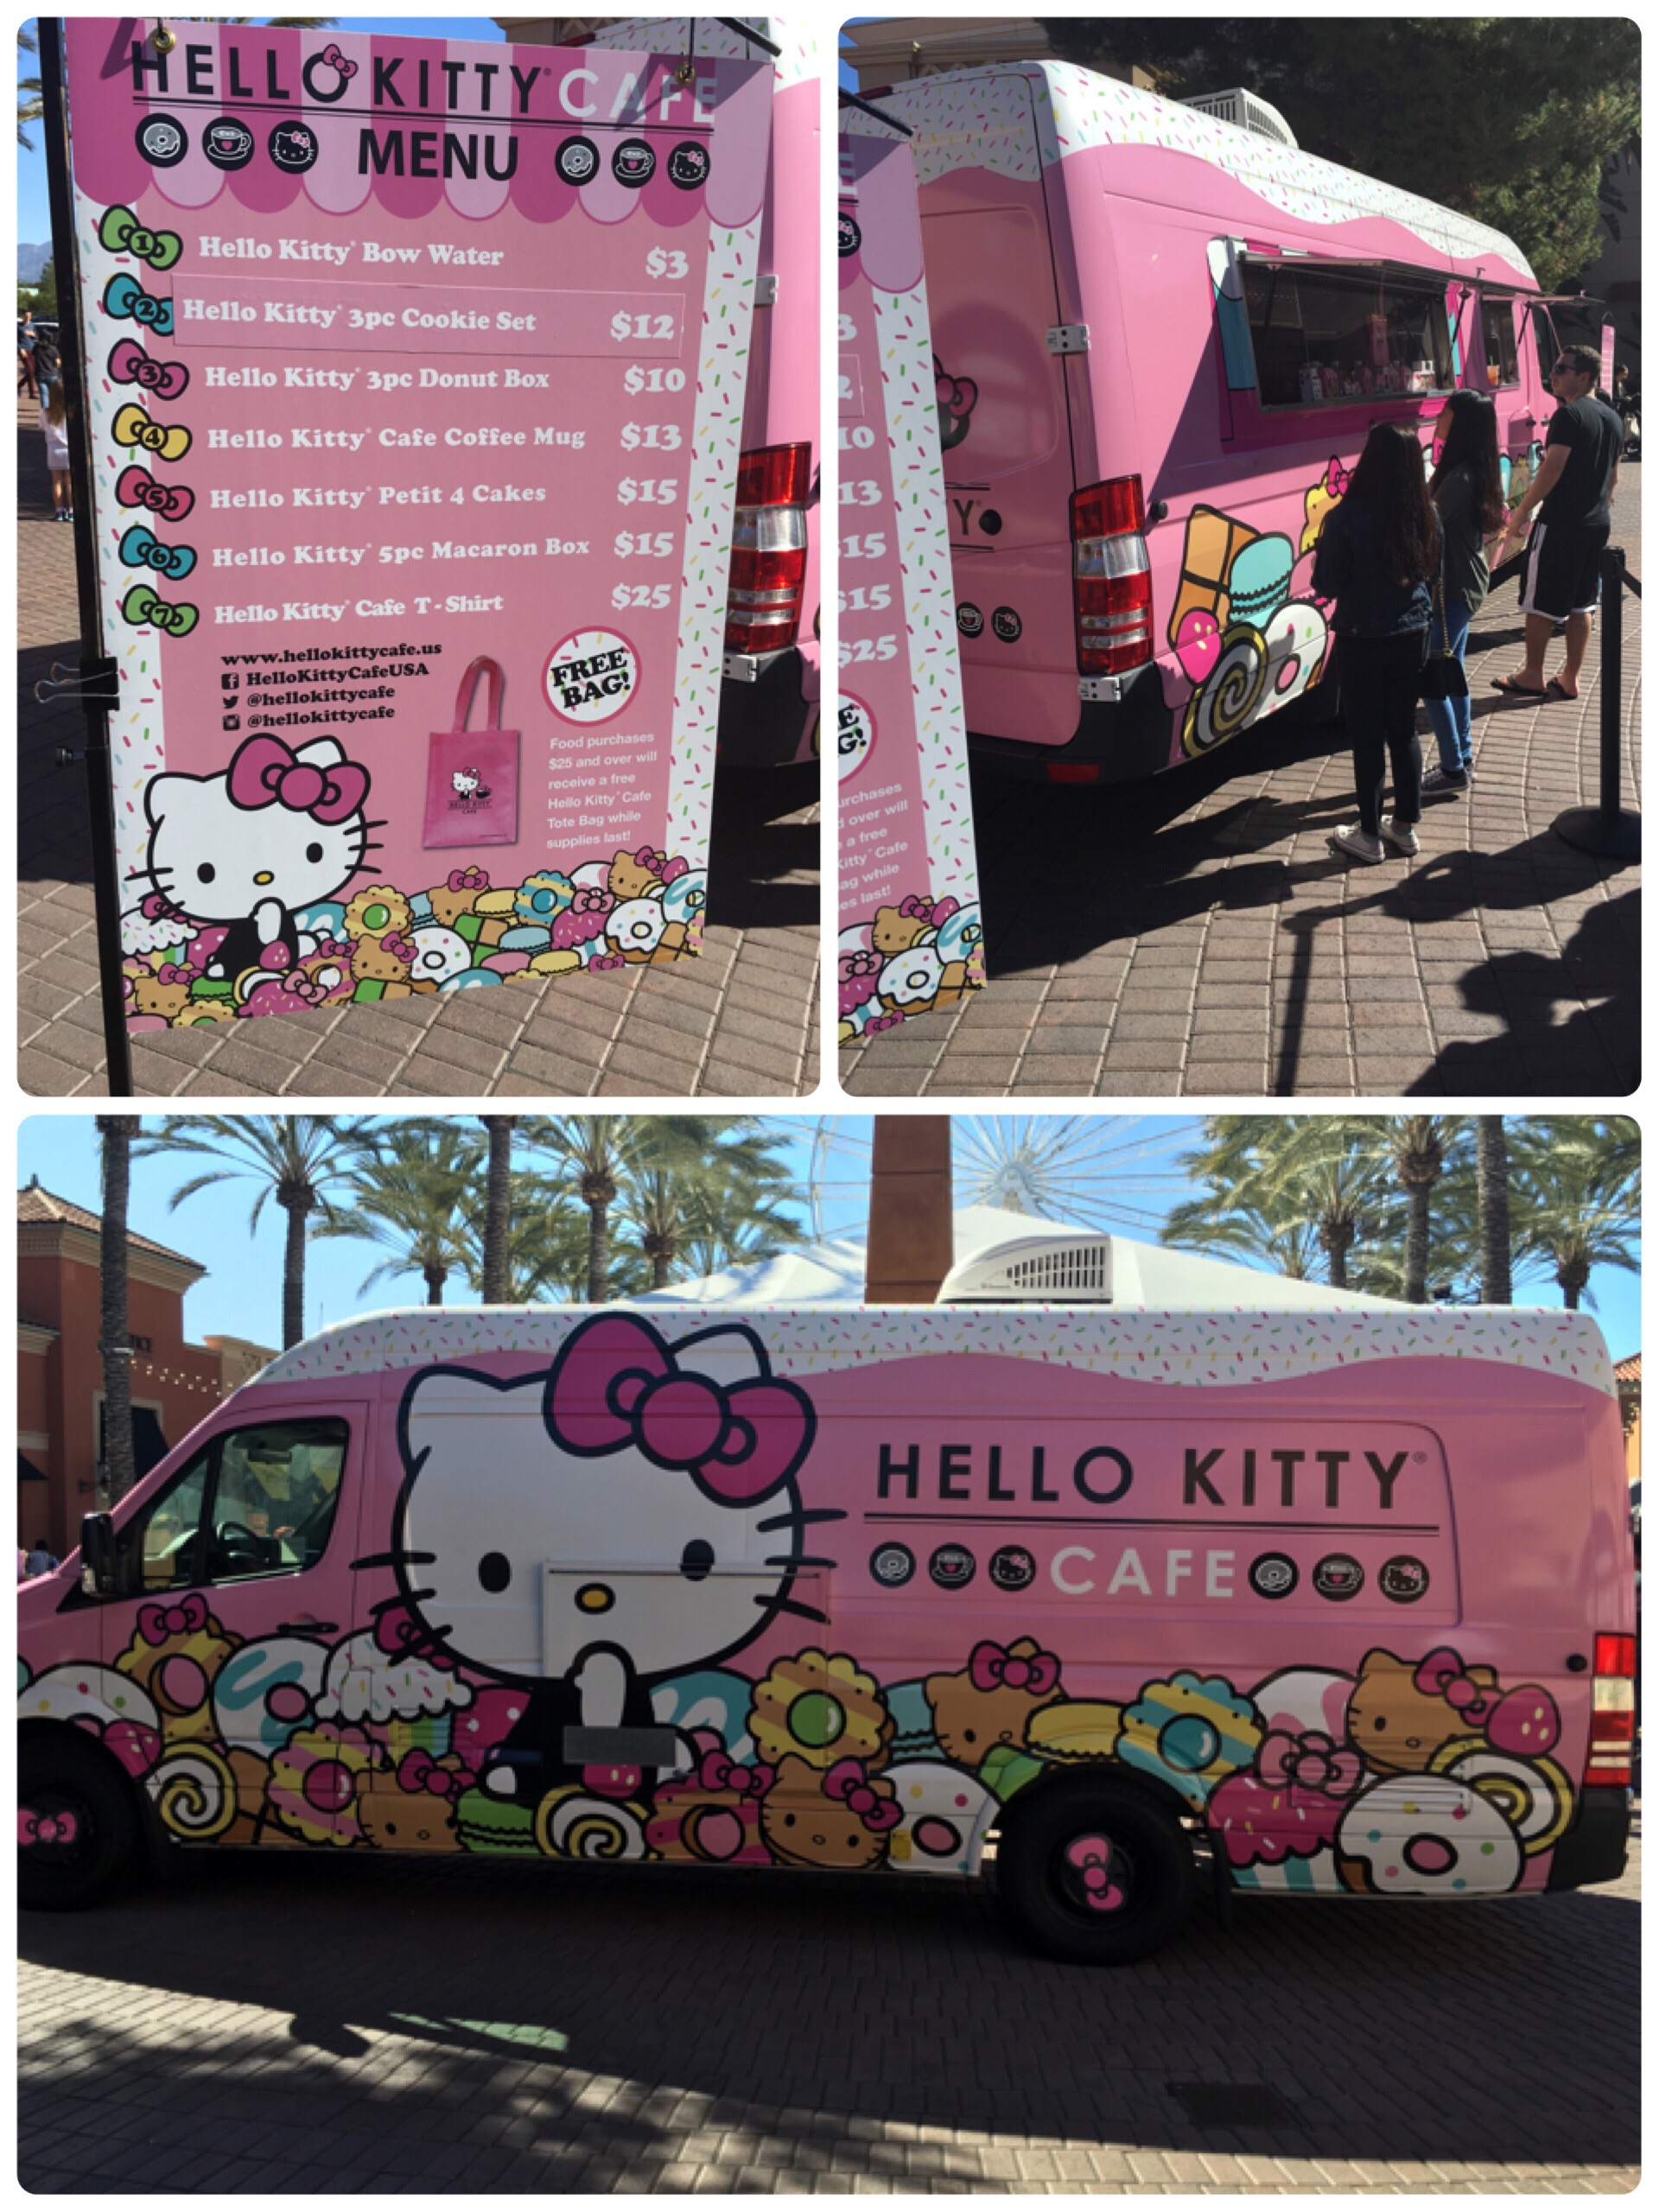 Hello kitty pop up cafe